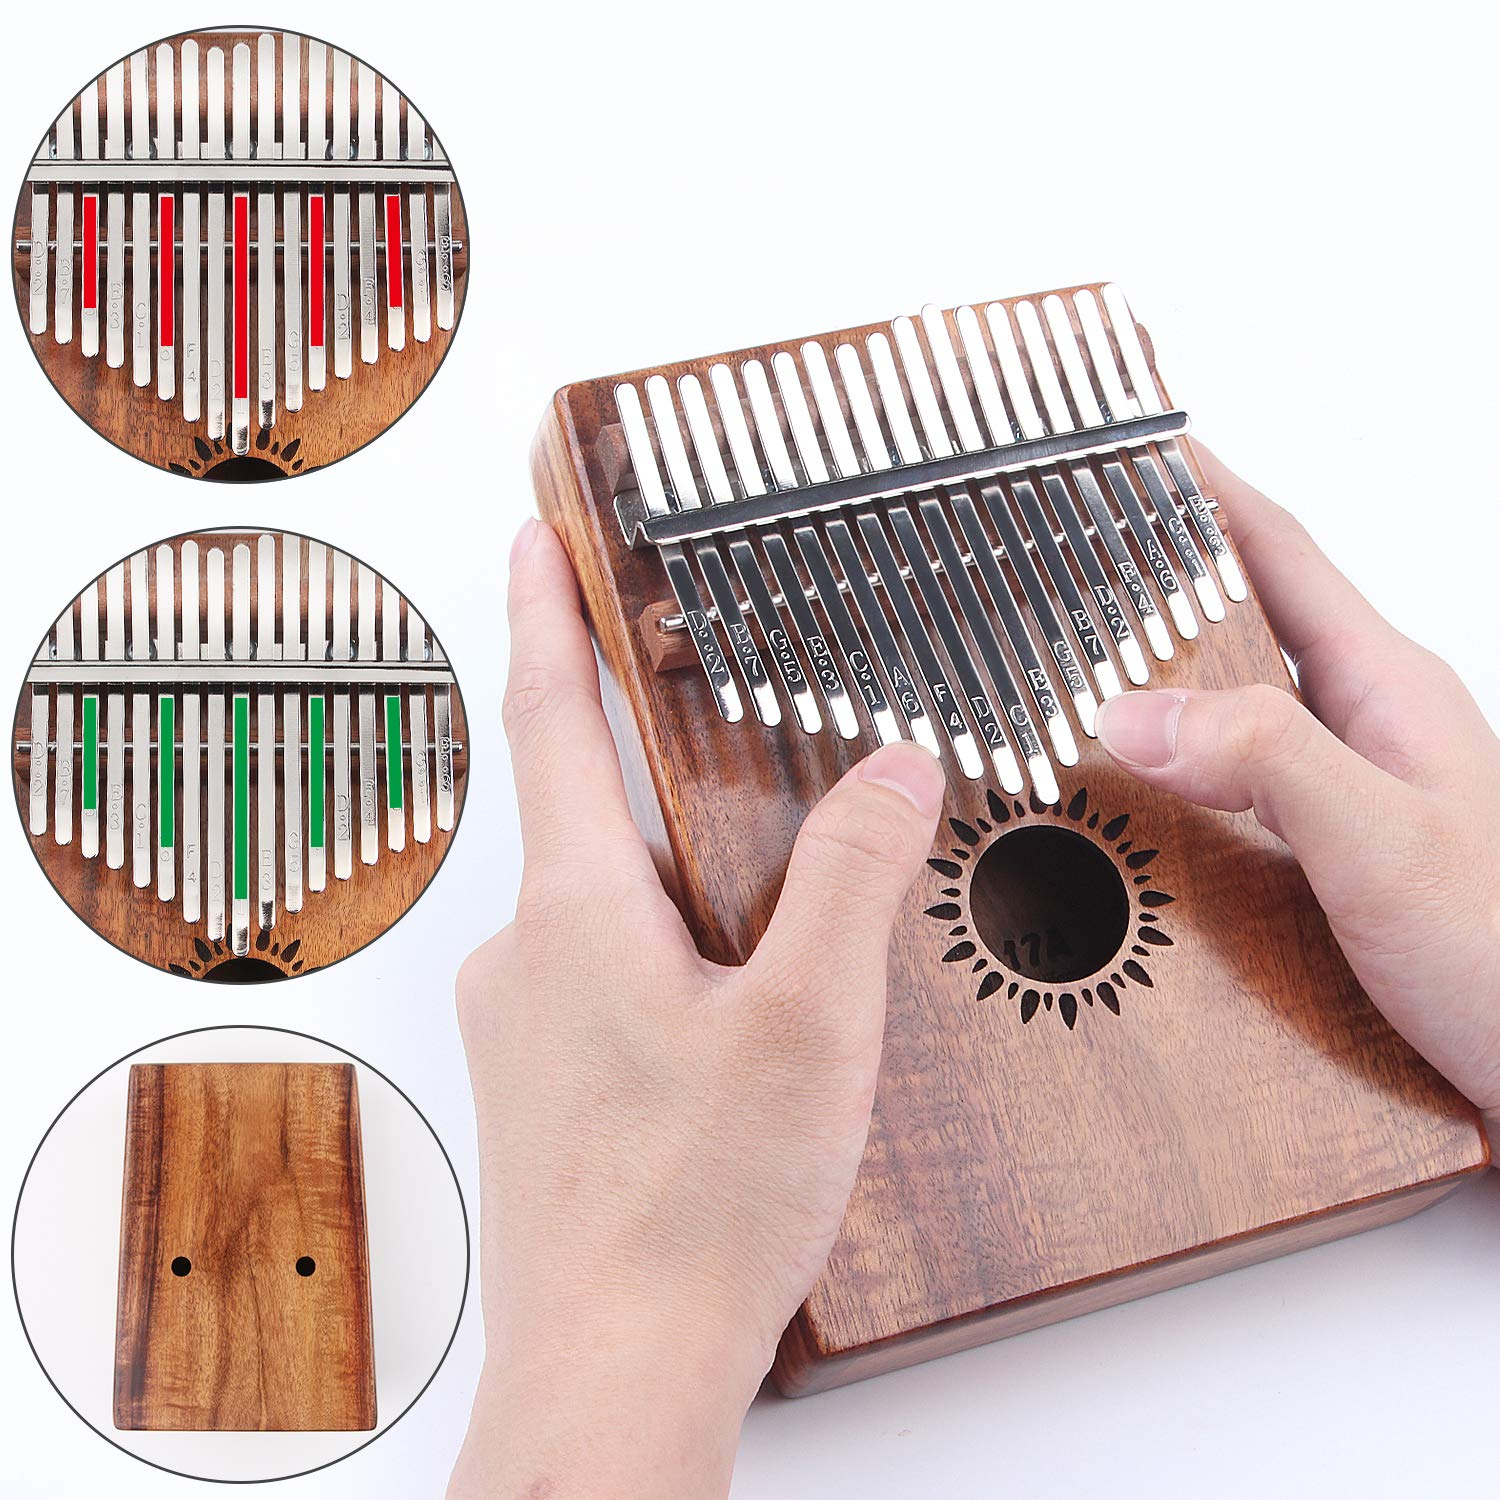 Kalimba Thumb Piano 17 Key, Portable Mbira Wood Finger Piano with 2 Bag and Sheet Music, Gifts for Kids Adult Beginners Professionals by HONHAND (Image #6)